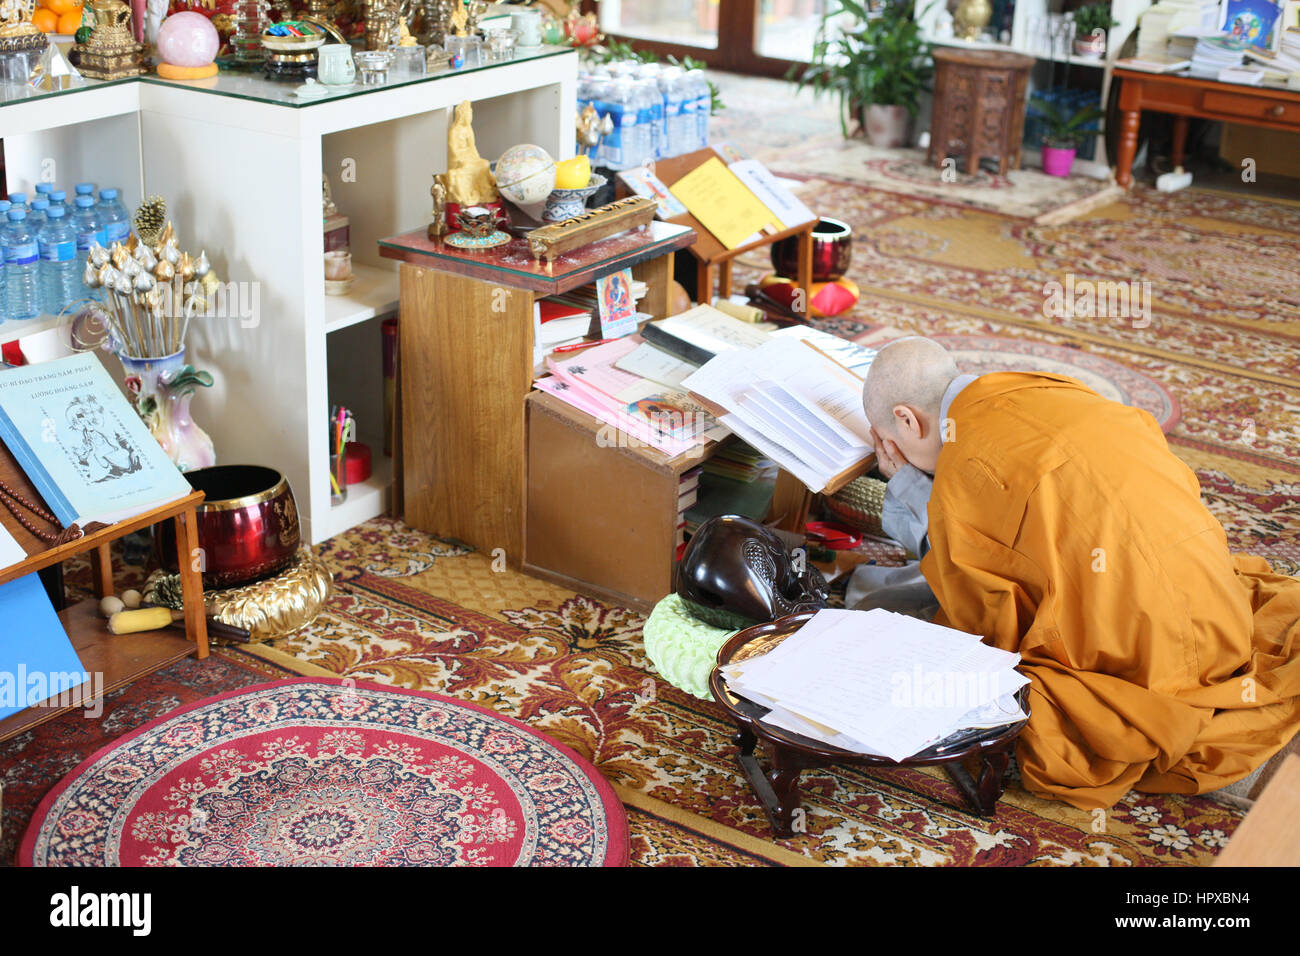 Buddhist ceremony. - Stock Image